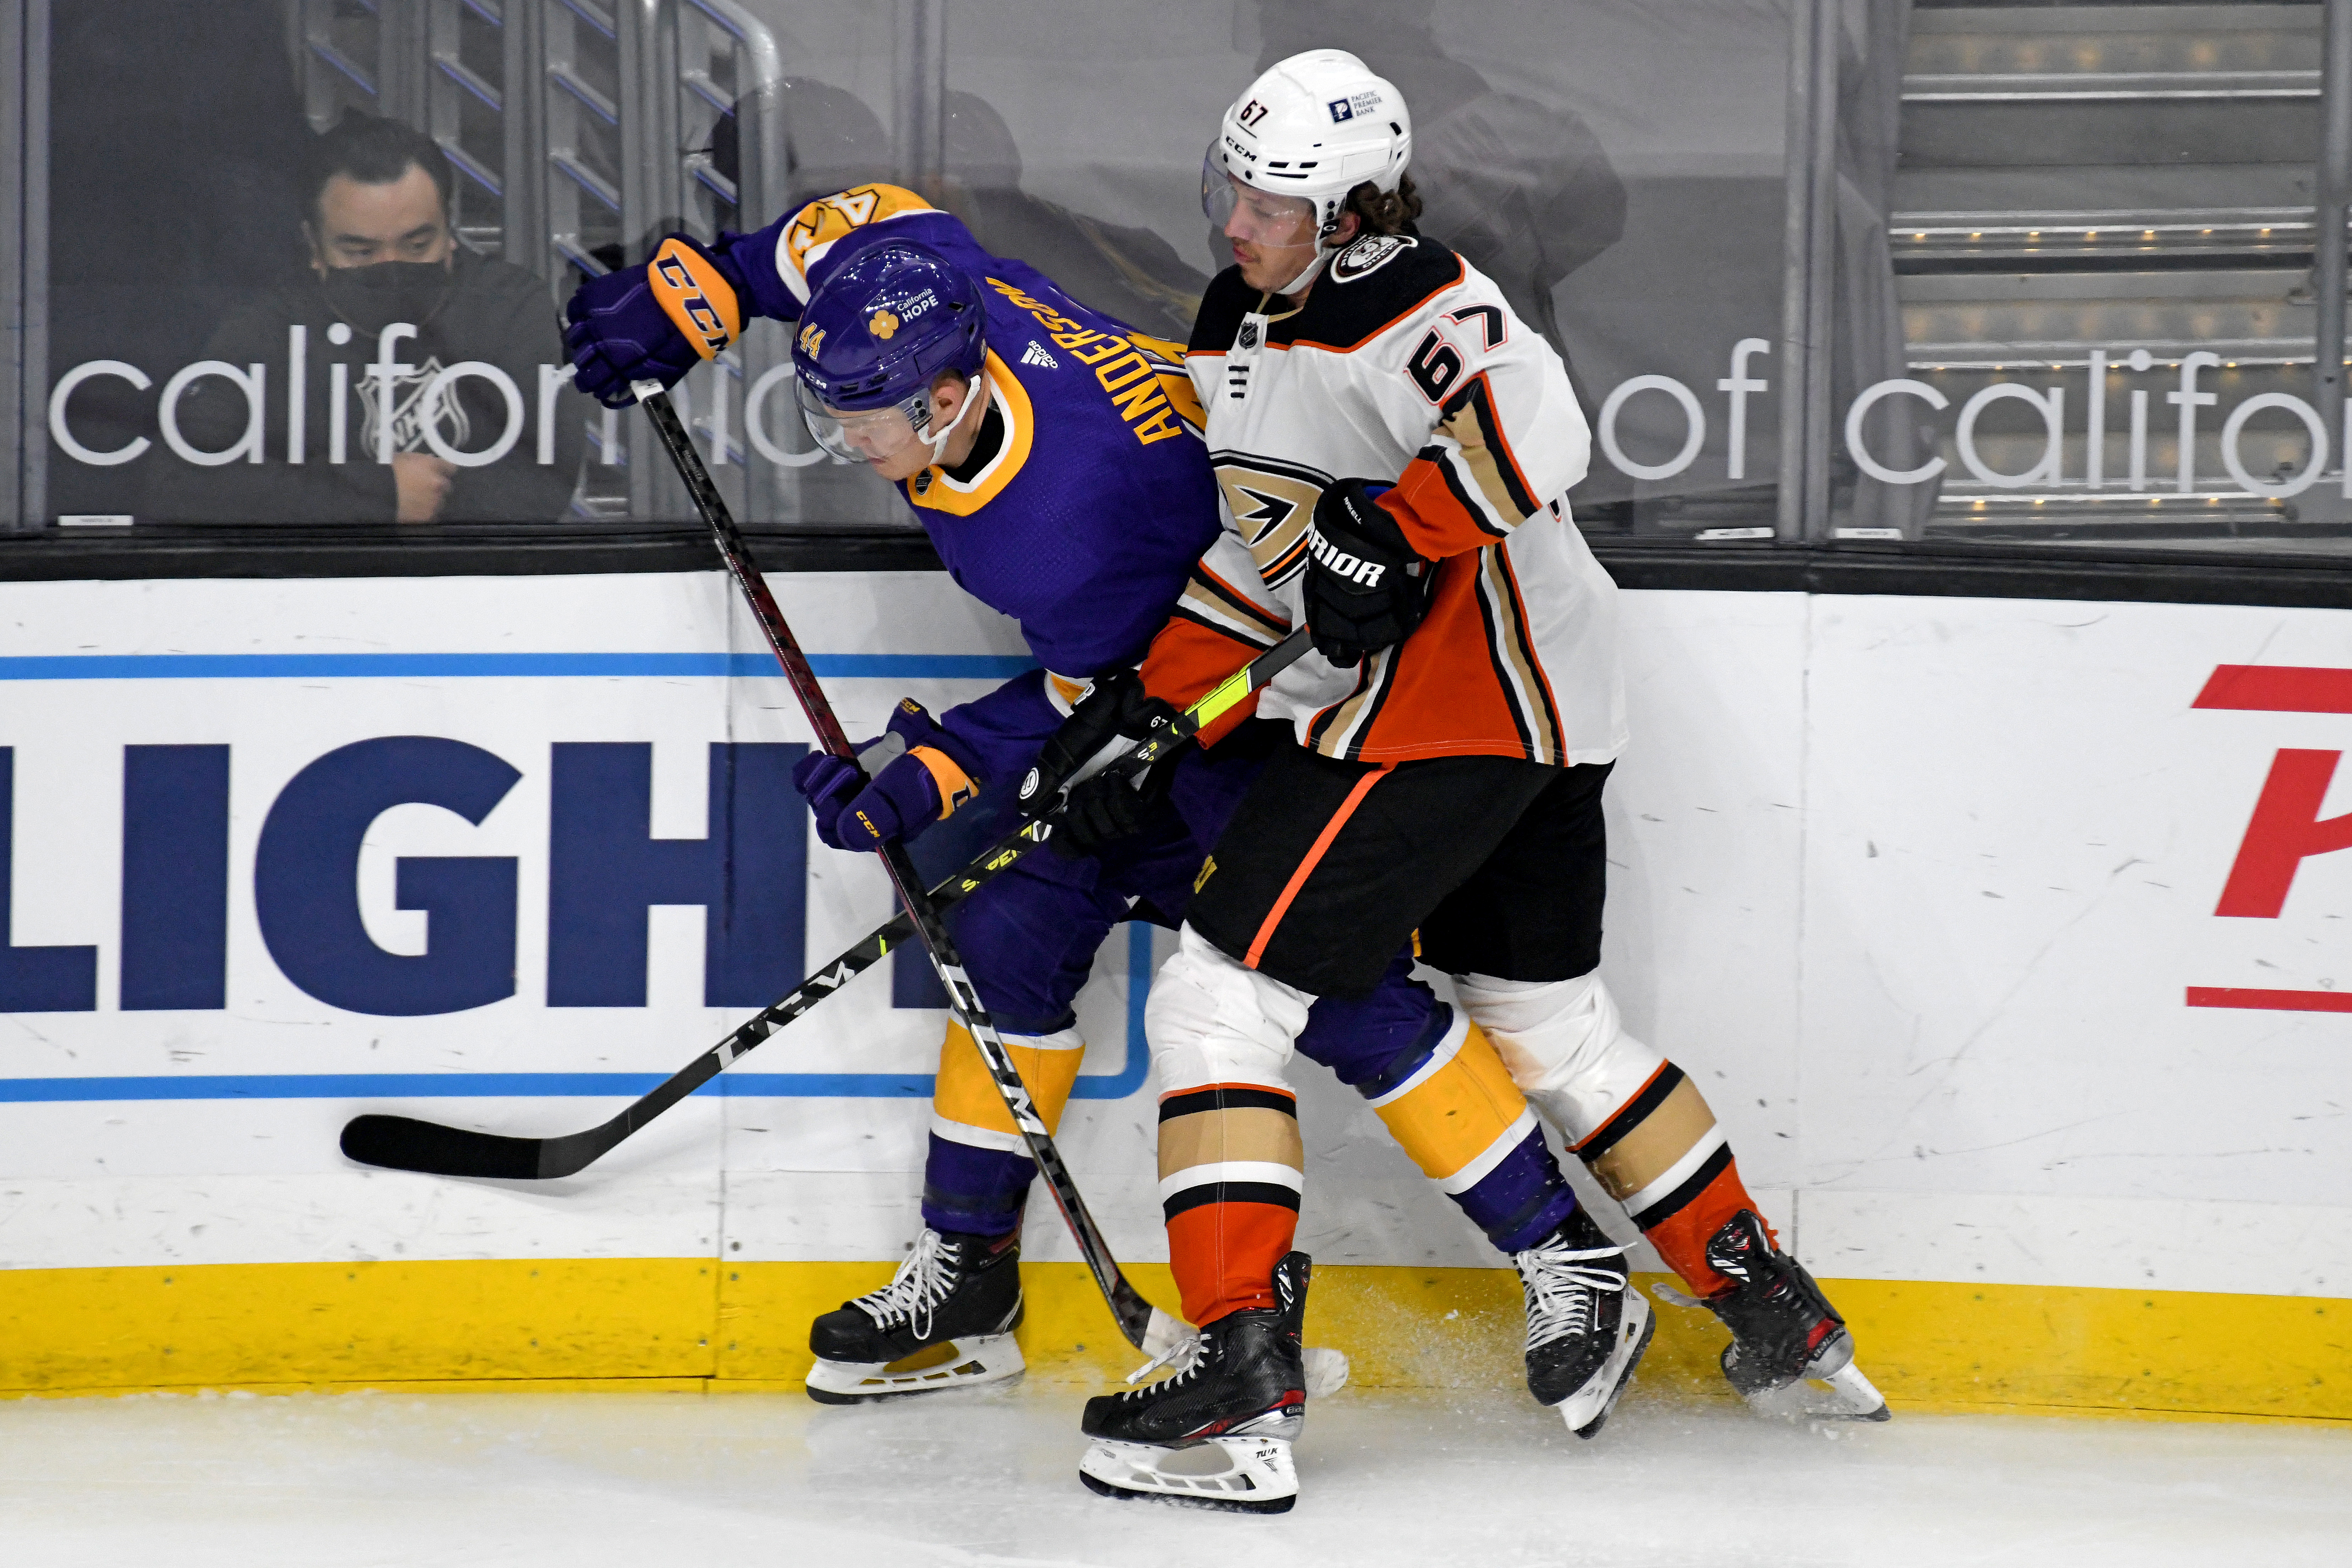 Los Angeles Kings Defenceman Mikey Anderson (44) and Anaheim Ducks Winger Rickard Rakell (67) battle along the boards during an NHL game between the Anaheim Ducks and the Los Angeles Kings on April 26, 2021, at the Staples Center in Los Angeles, CA.